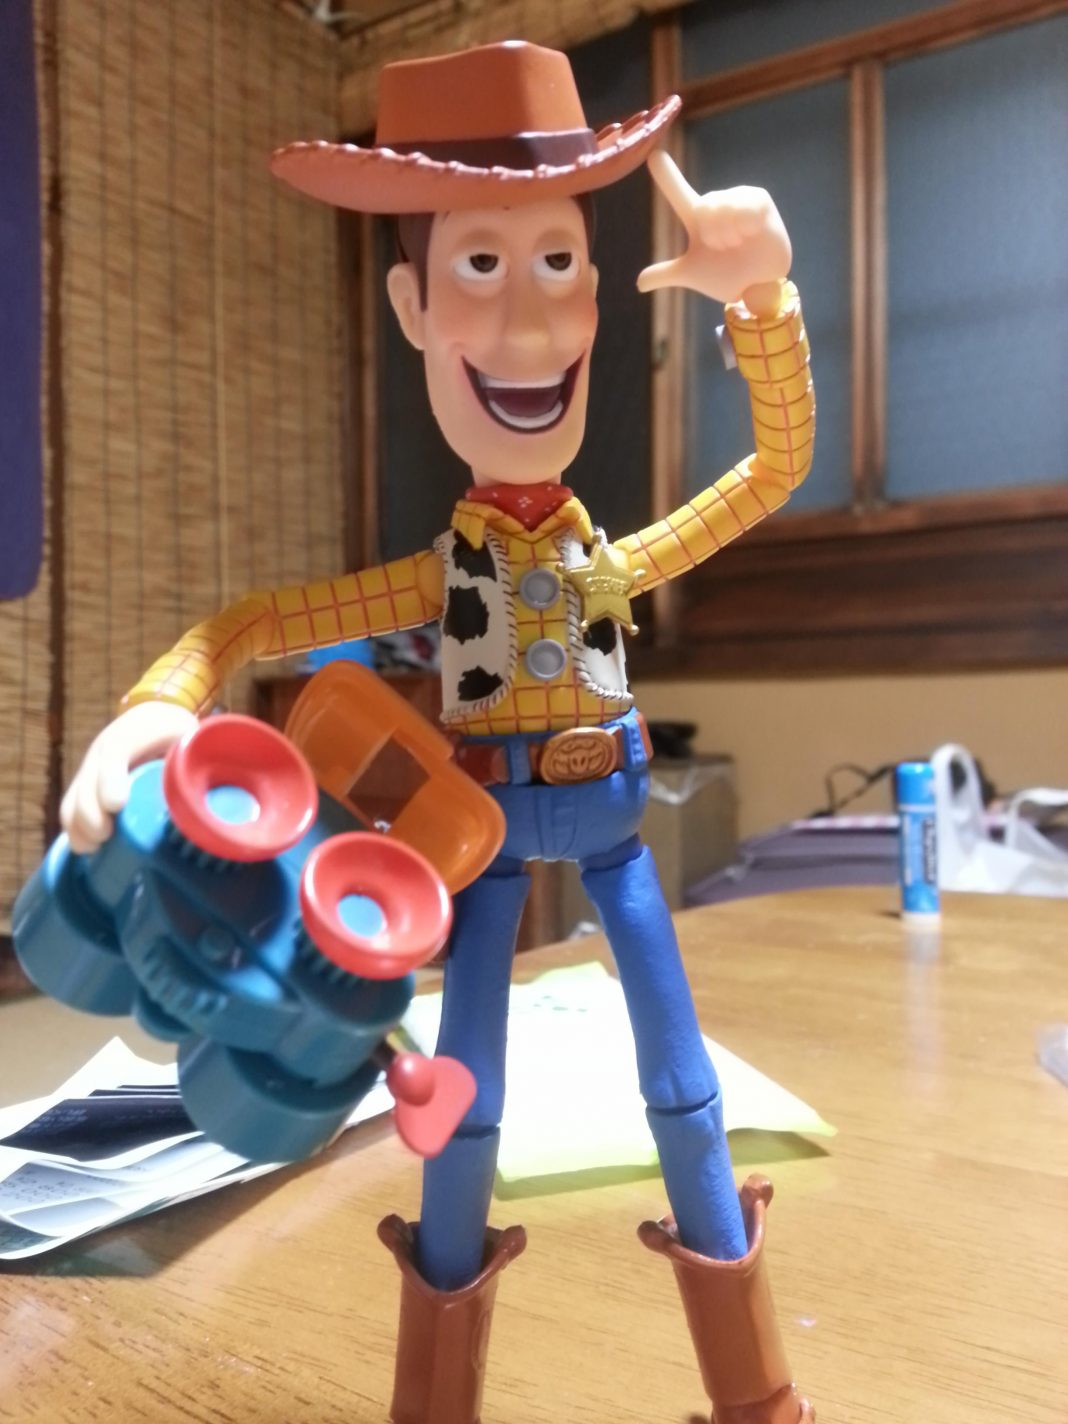 Ssble hentai woody classic mode